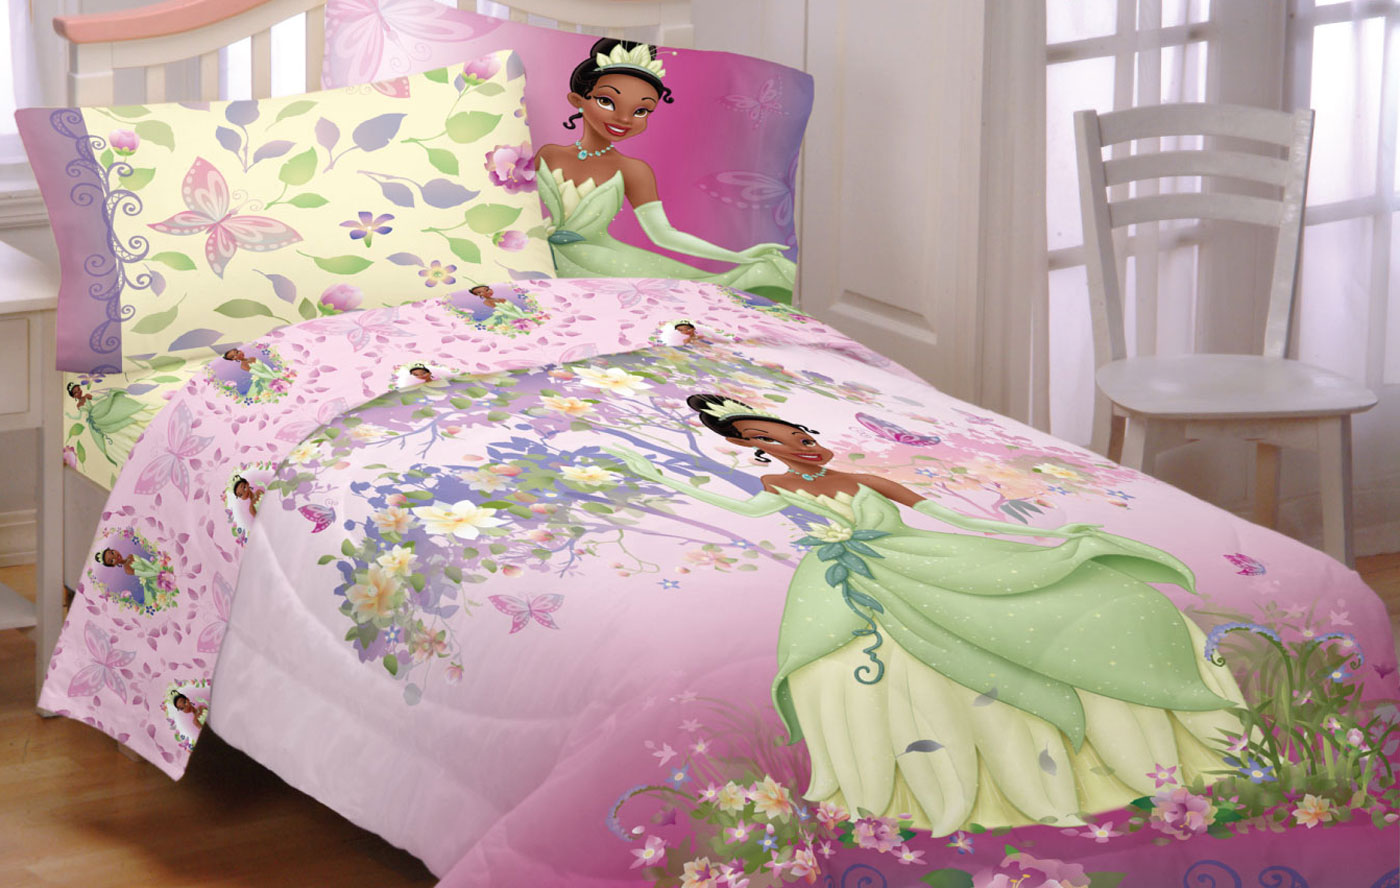 Disney Princess And The Frog Southern Butterflies Polyester Bedding Sheet Set Walmart Com